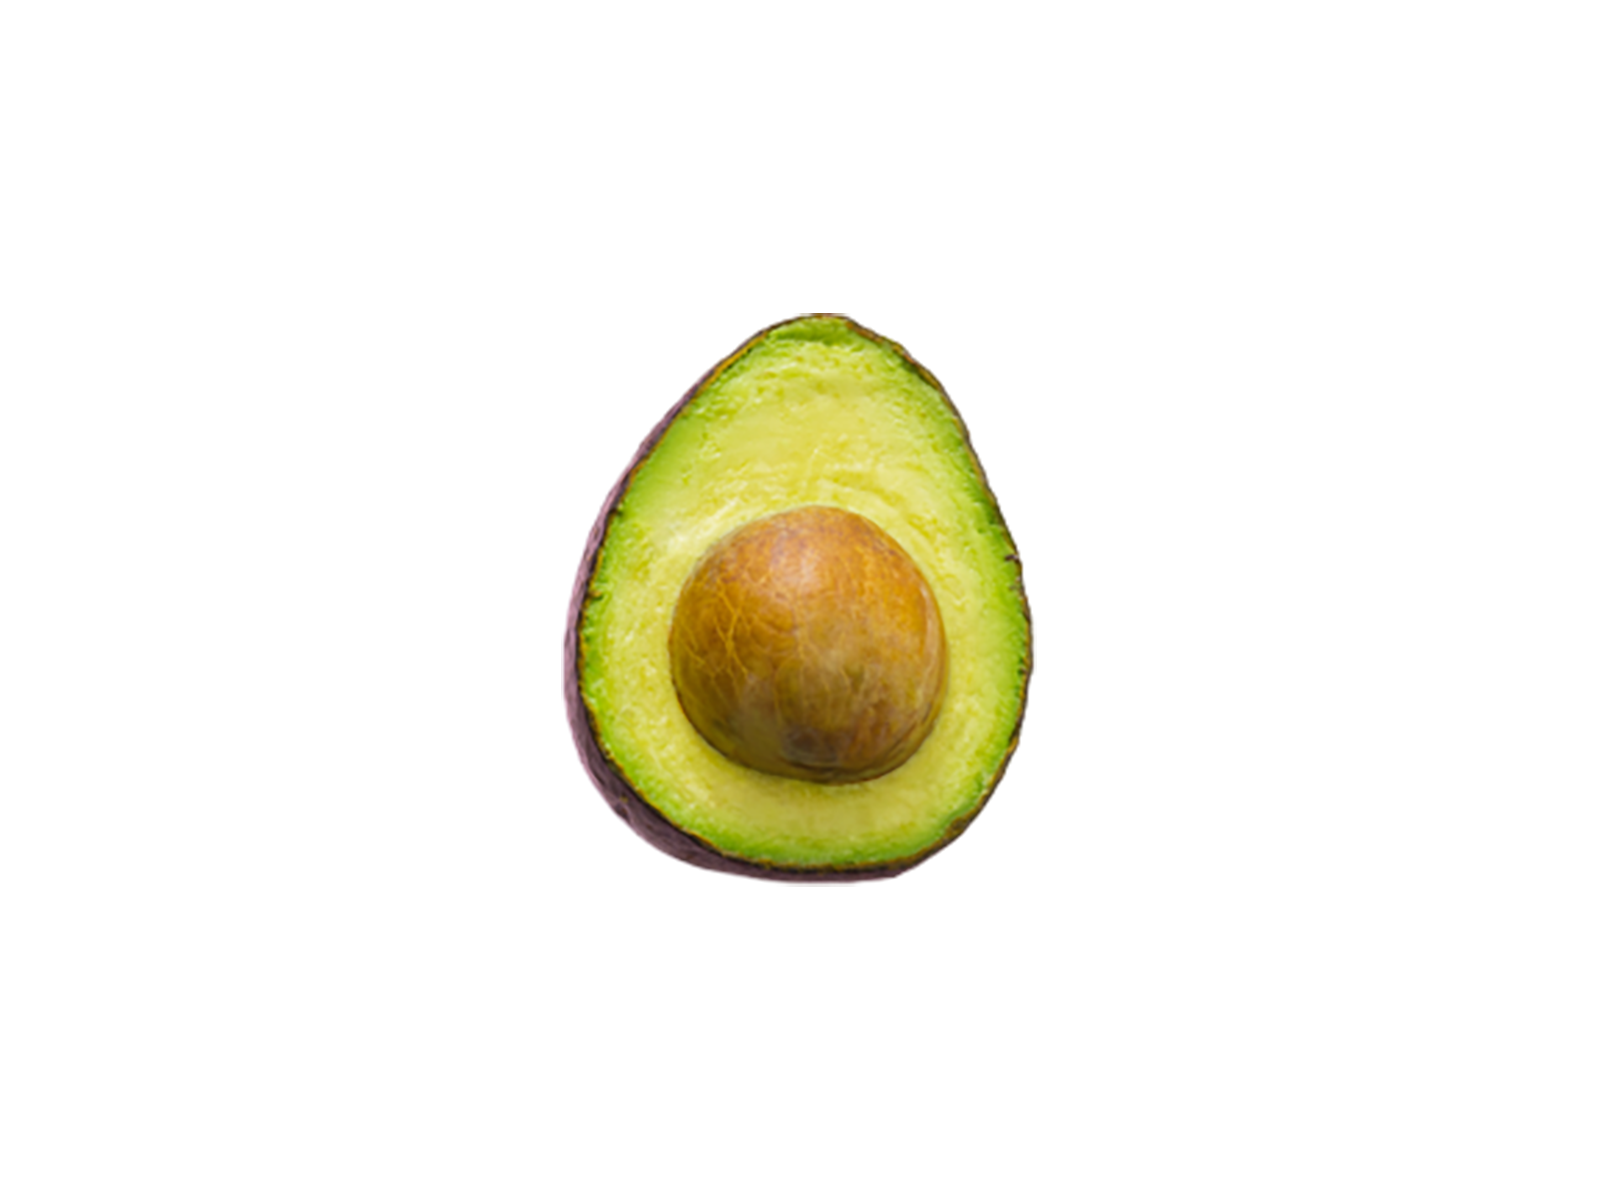 Piece of Avocado transparent background PNG